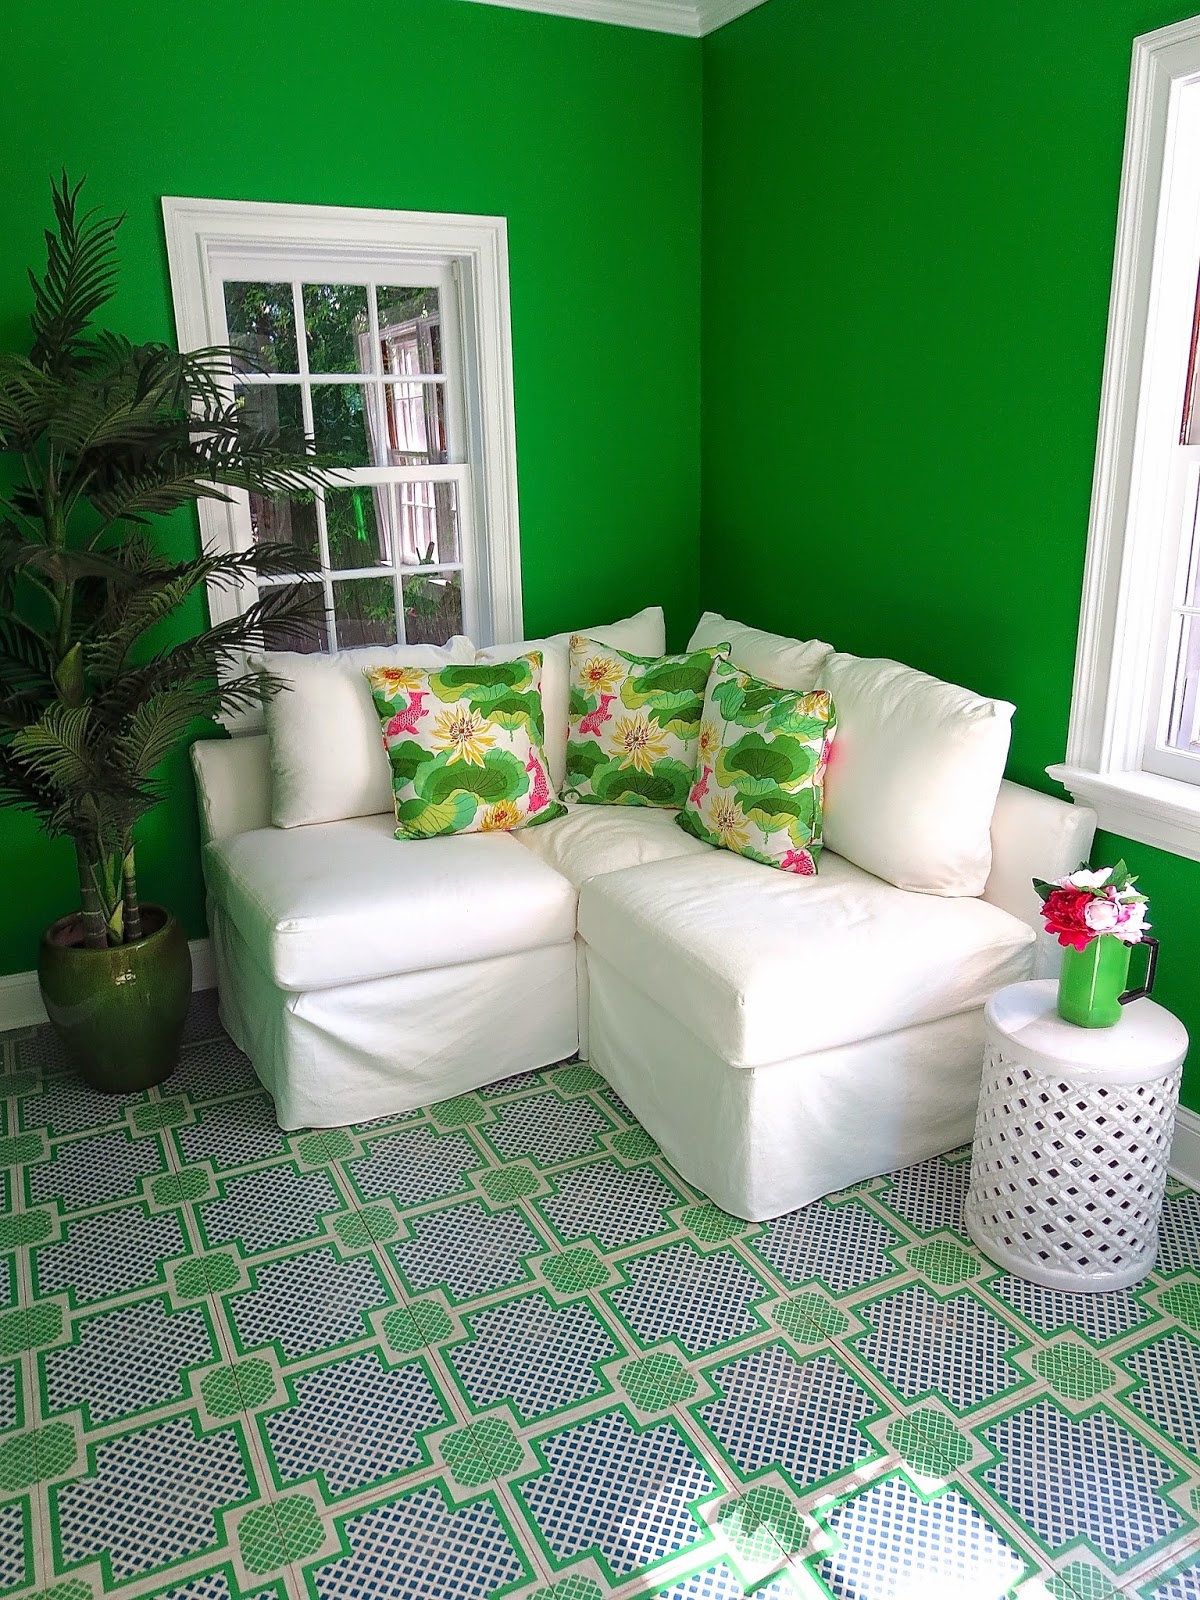 kelly green garden room painted wood tile floors - Living Room East Hampton